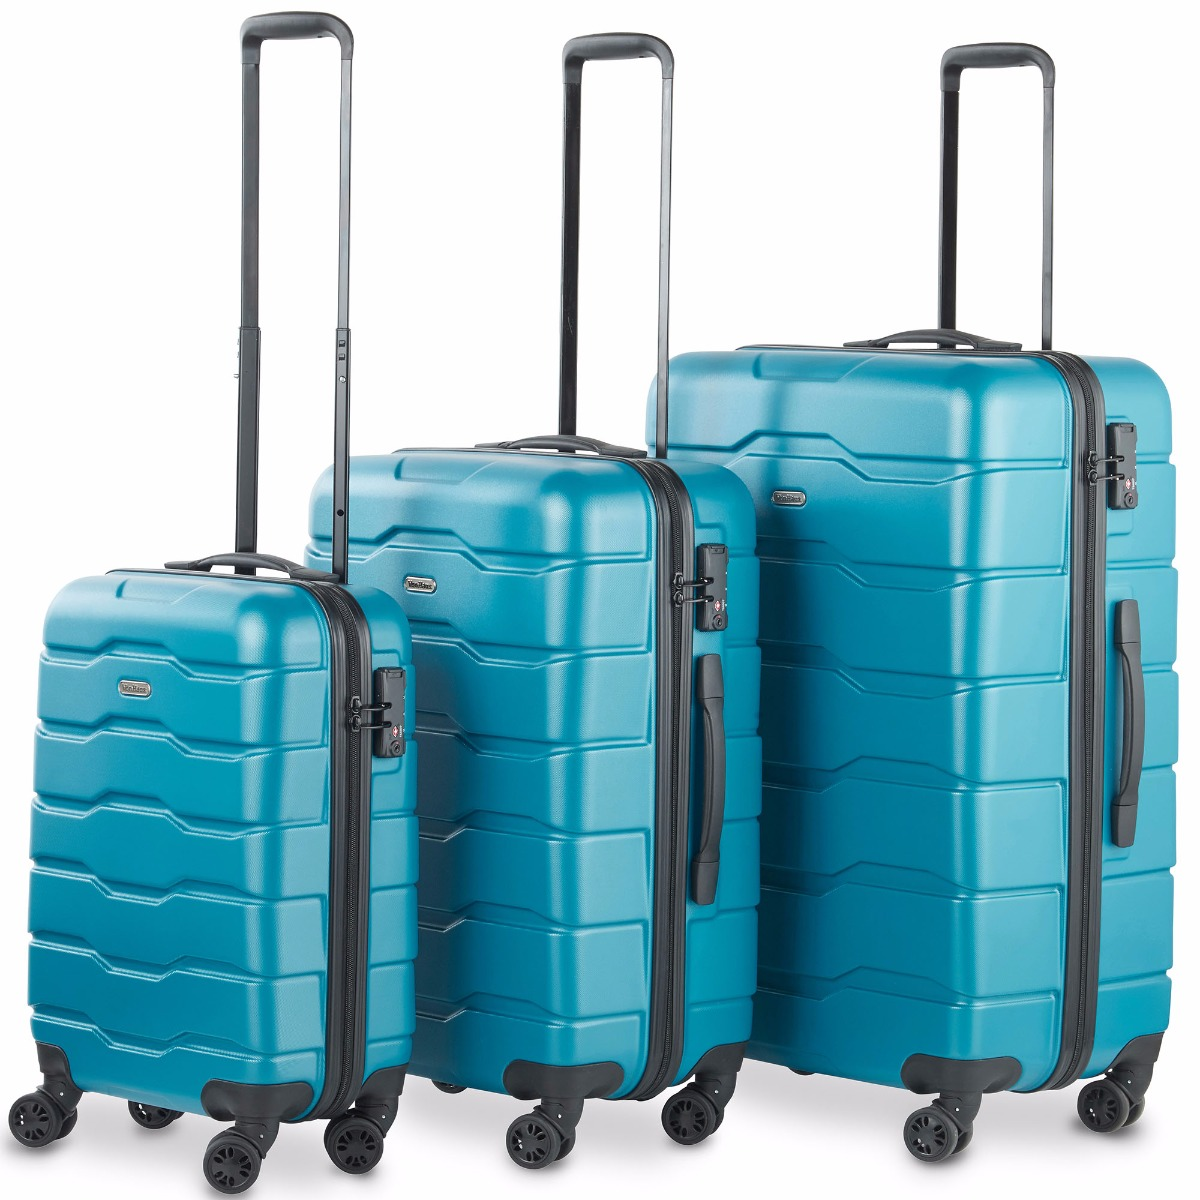 VonHaus Premium Teal 3 Piece Lightweight Travel Luggage Set - Hard Shell Suitcase with 4 Spinner Wheels, TSA Integrated Lock, Extendable Handle - Small, Medium and Large